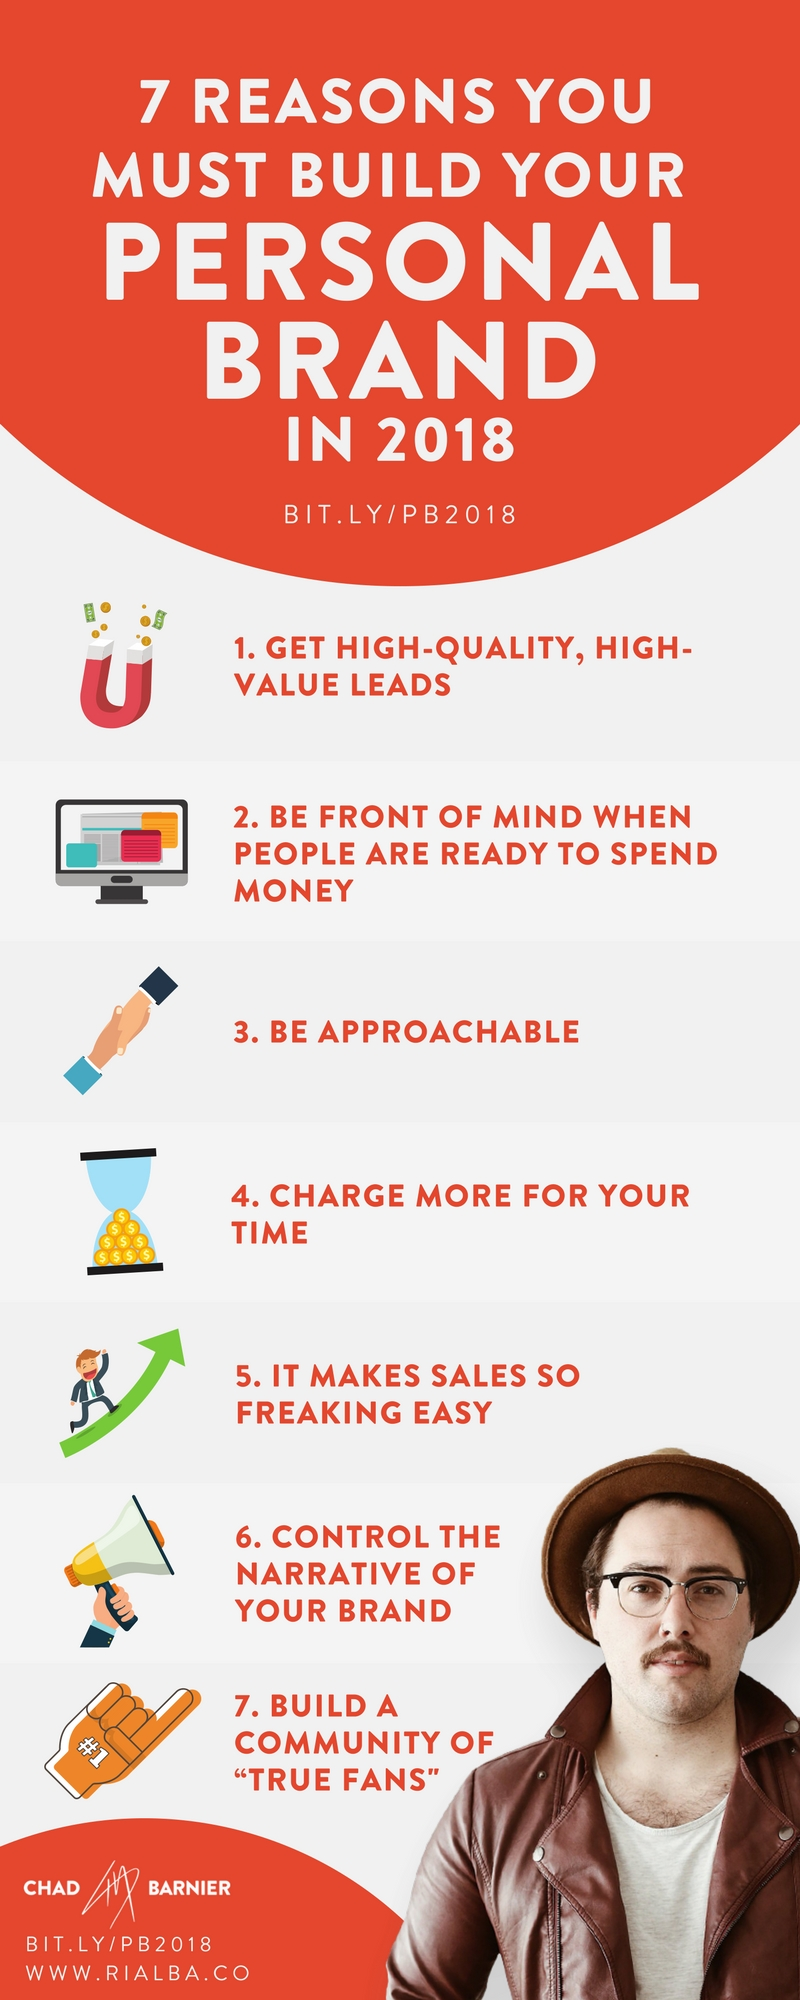 7 REASONS YOU MUST BUILD YOUR PERSONAL BRAND IN 2018.jpg